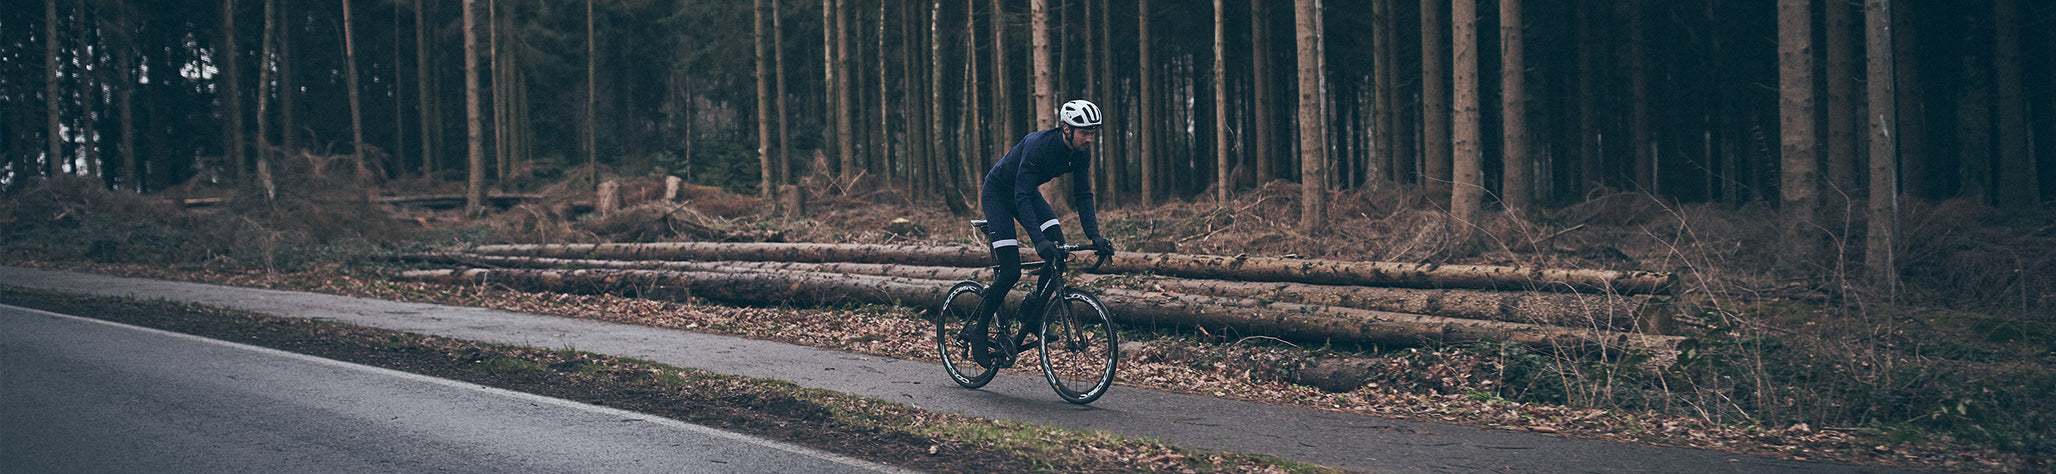 Ryzon Apparel Guide // Autumn Bike Edition Header Image